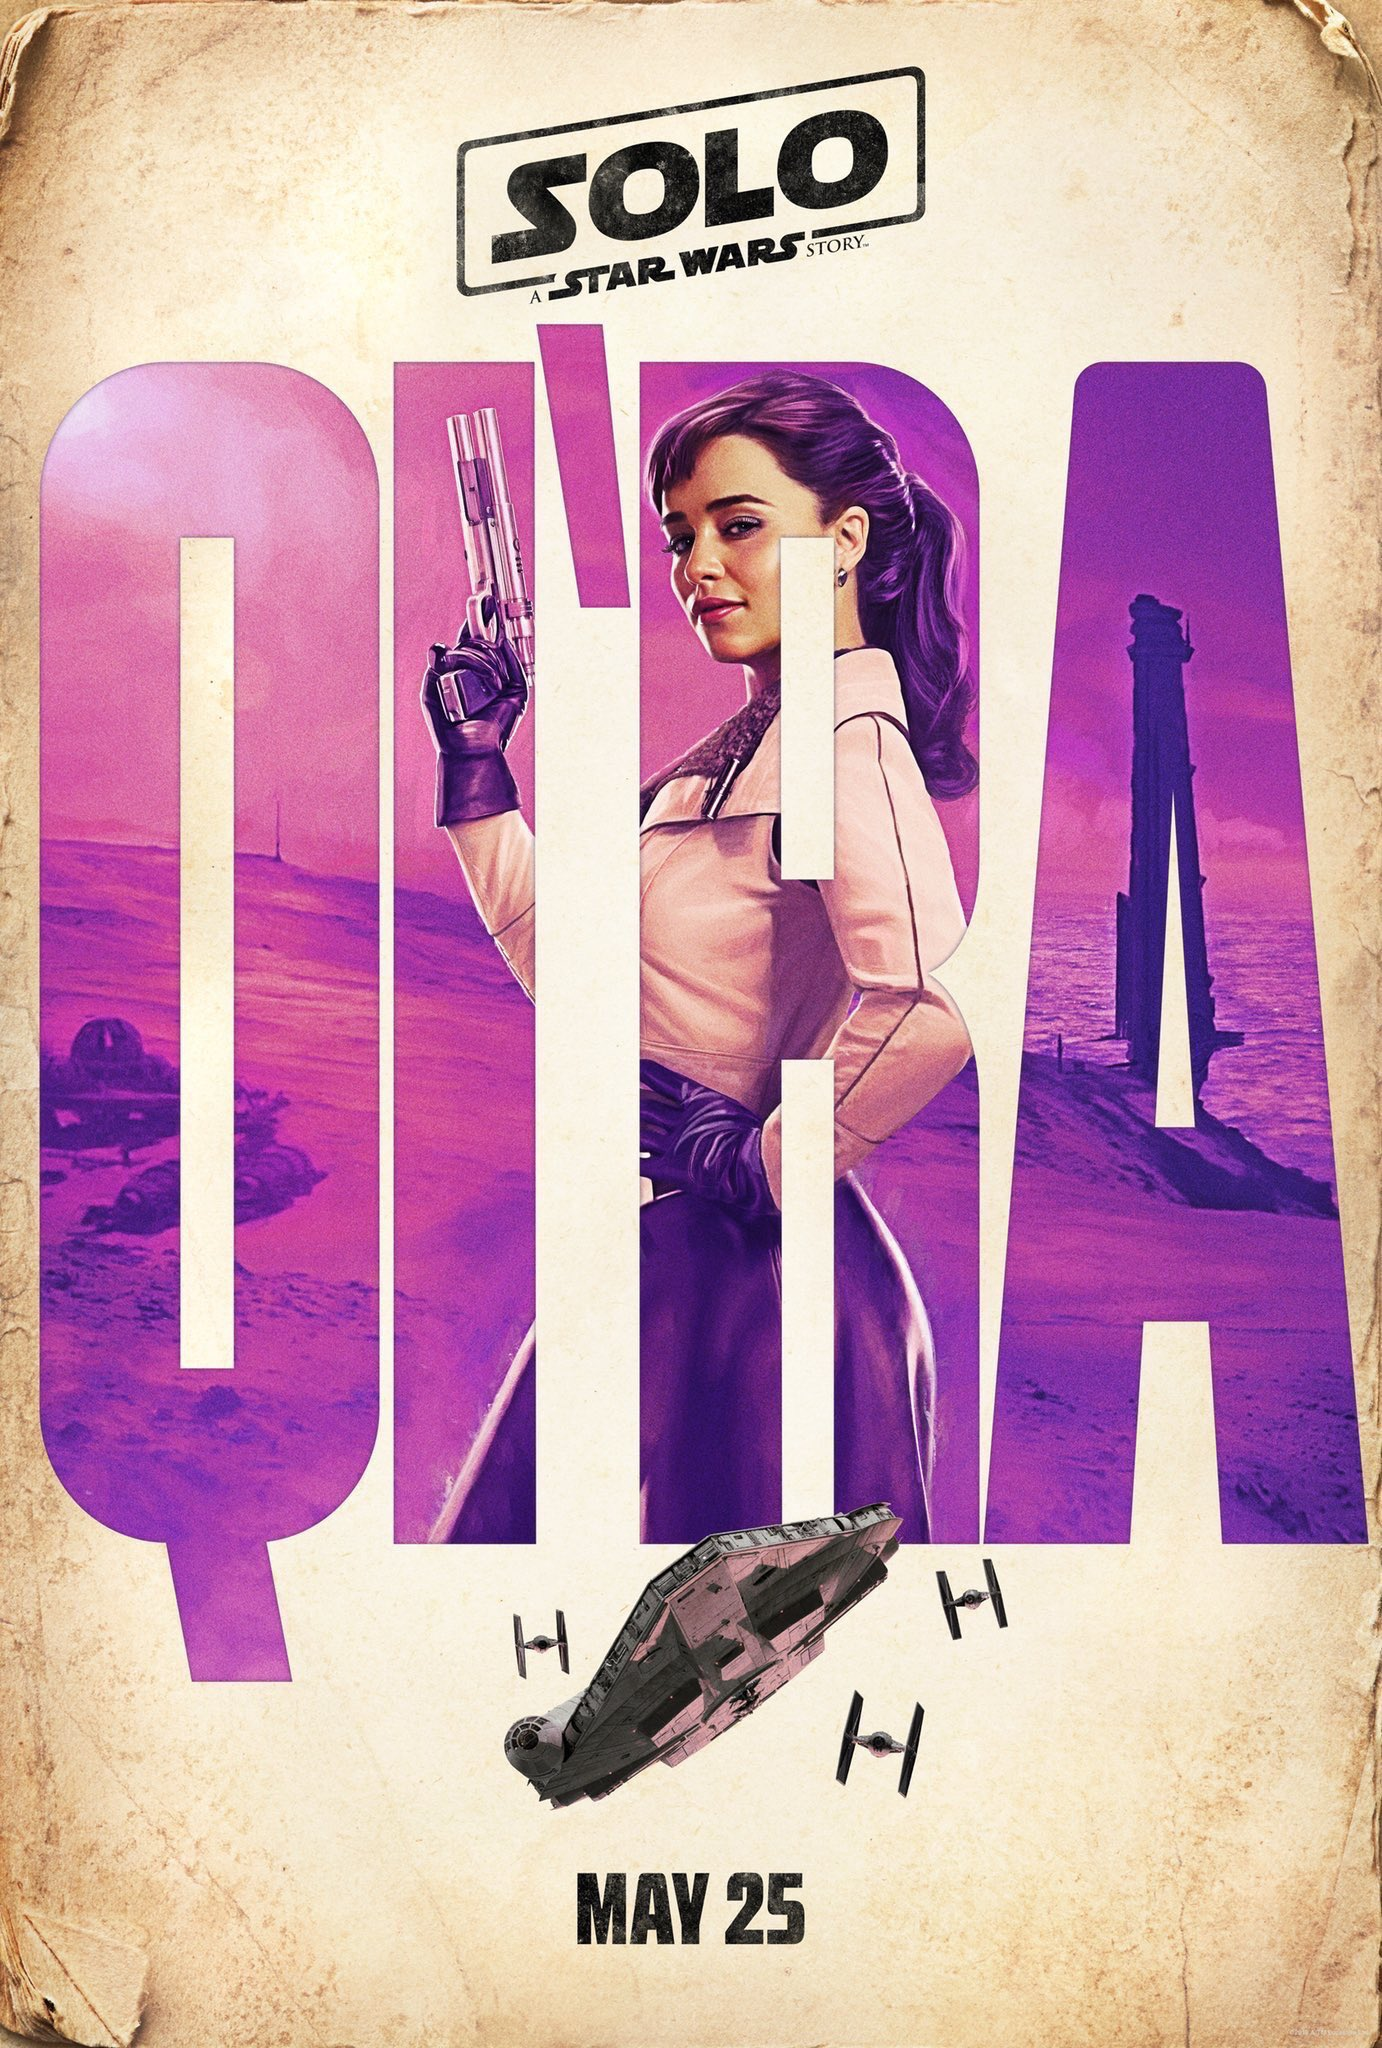 qi'ra poster from solo